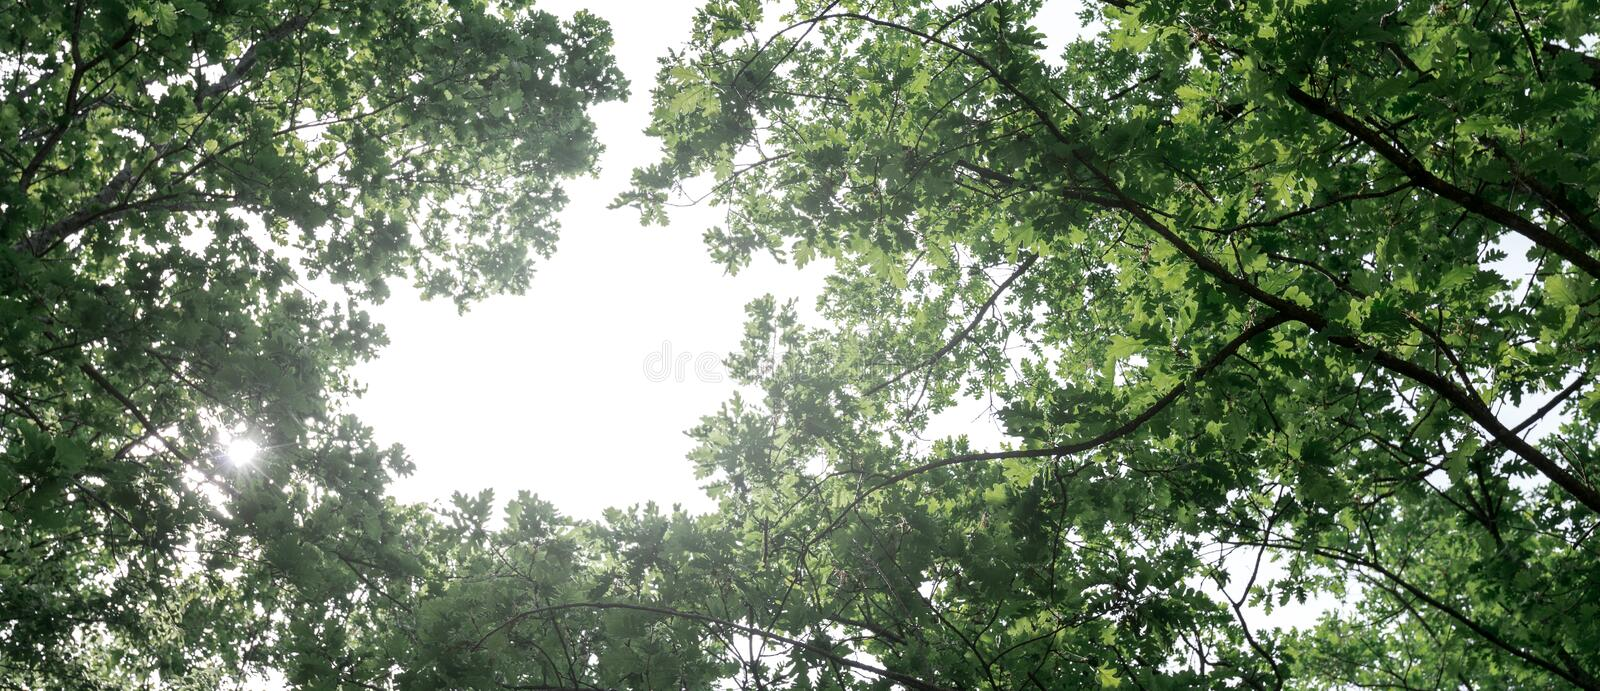 Eco-friendly air transport concept. The plane flies in the sky against the background of green trees. Environmental pollution. Harmful emissions royalty free stock images